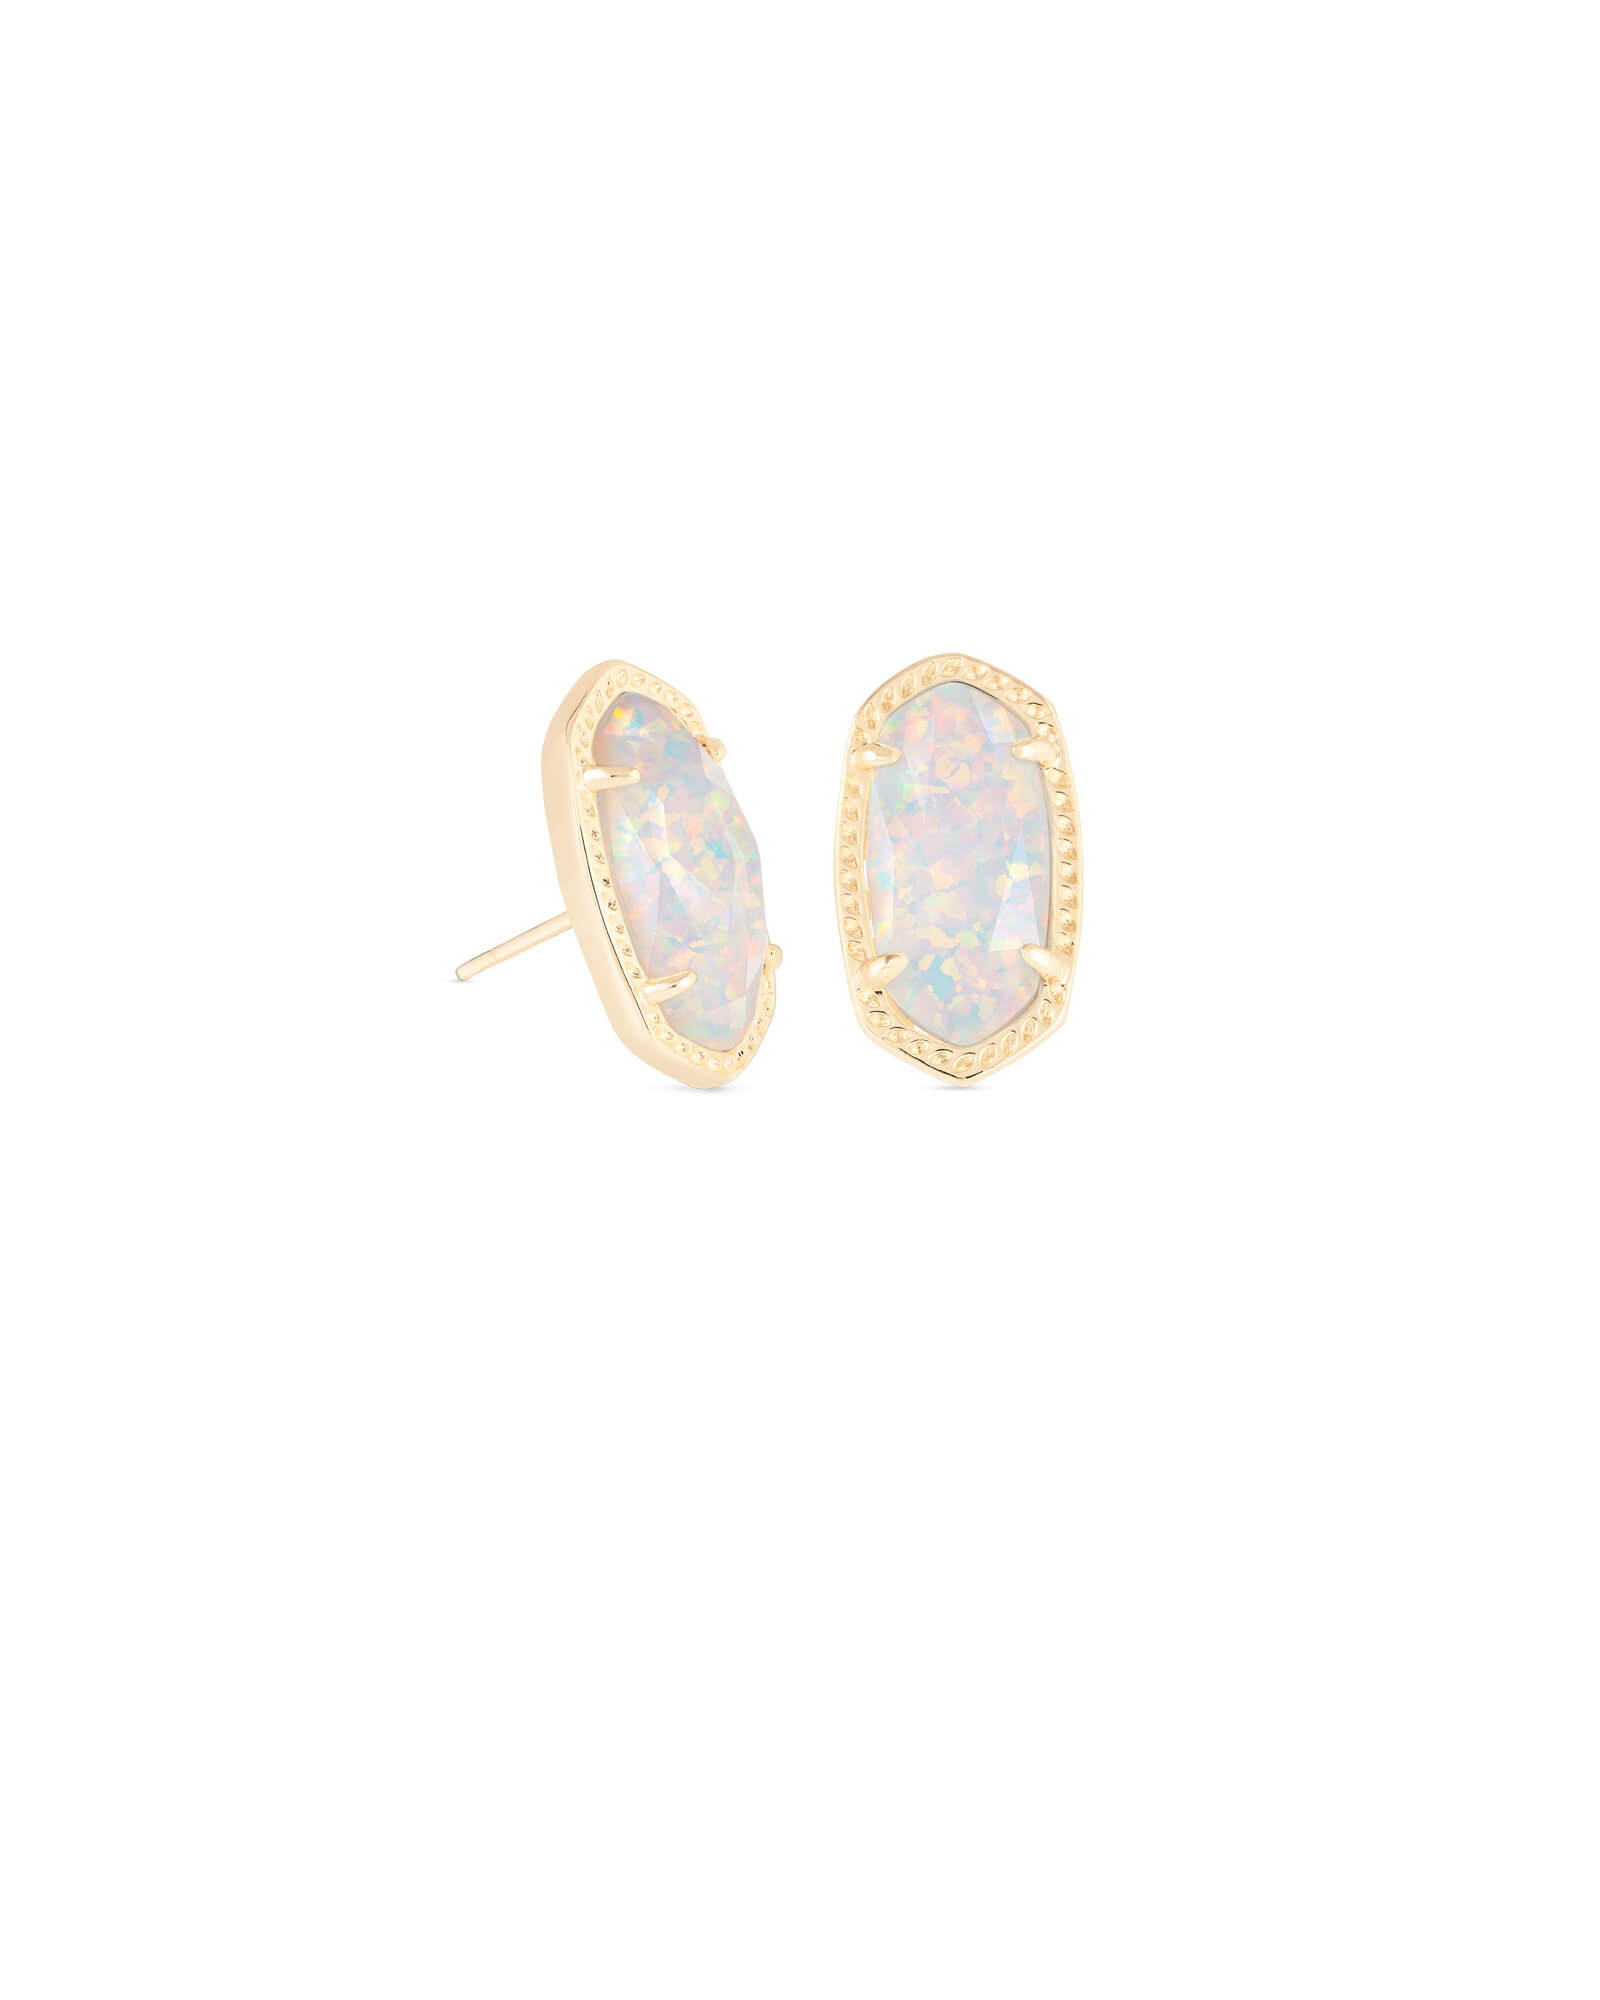 Ellie Gold Stud Earrings In White Kyocera Opal